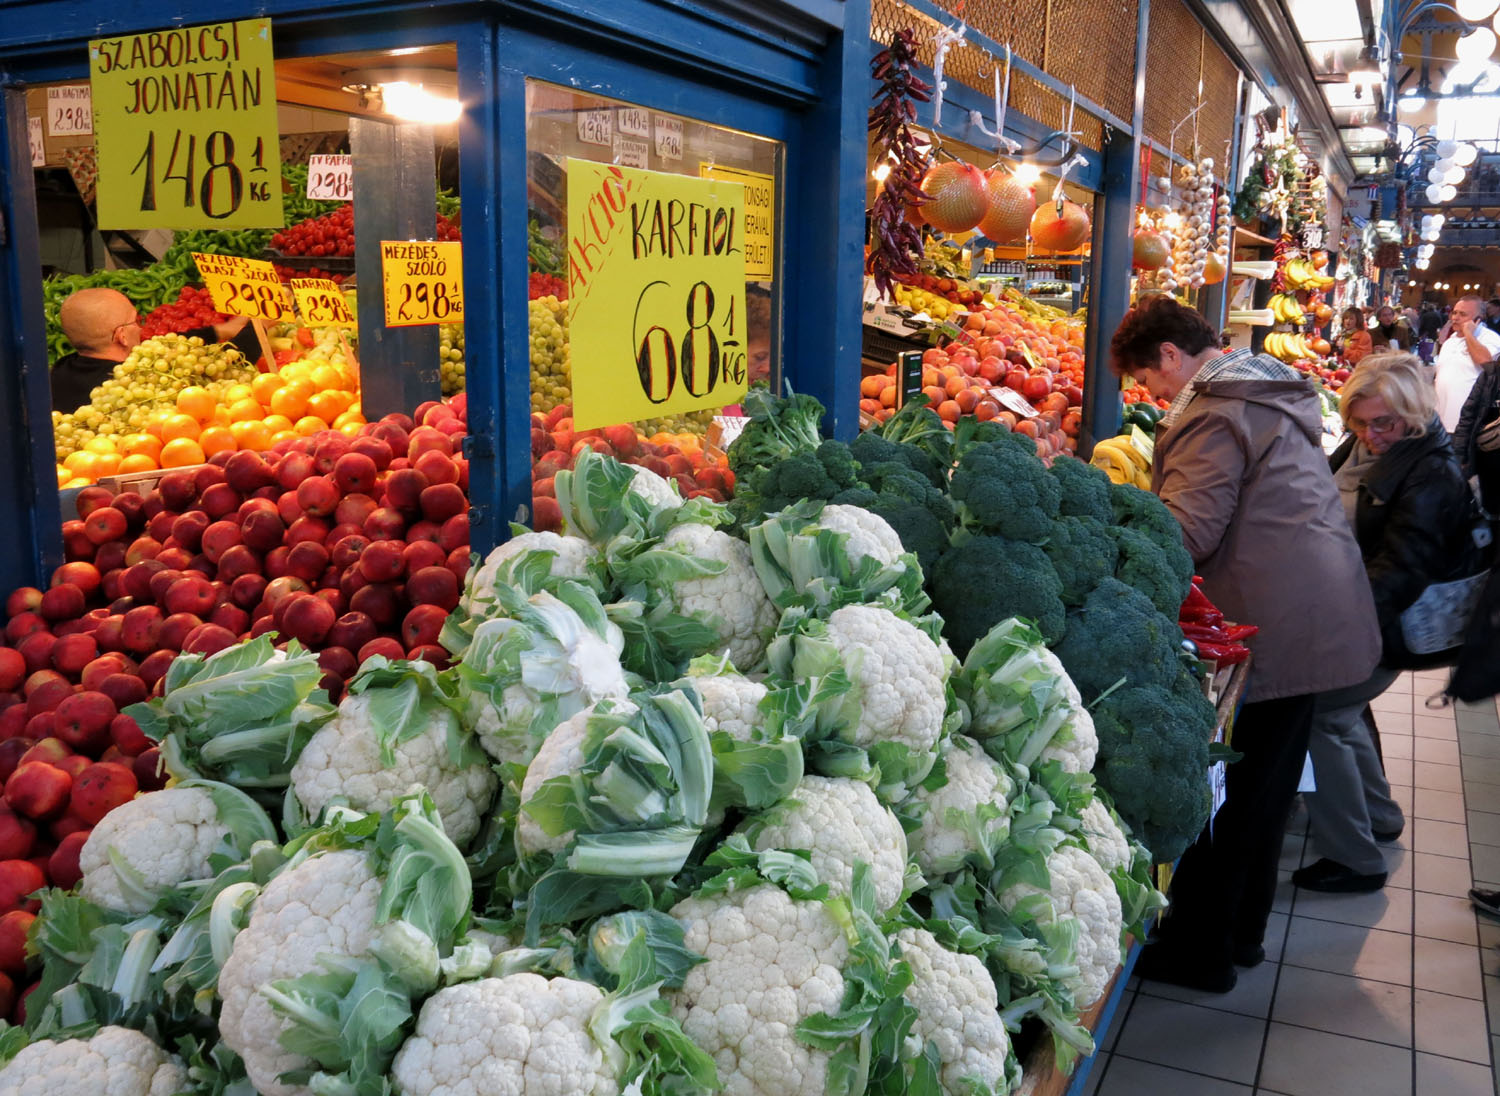 Hungary-Budapest-Great-Market-Hall-Vegetables